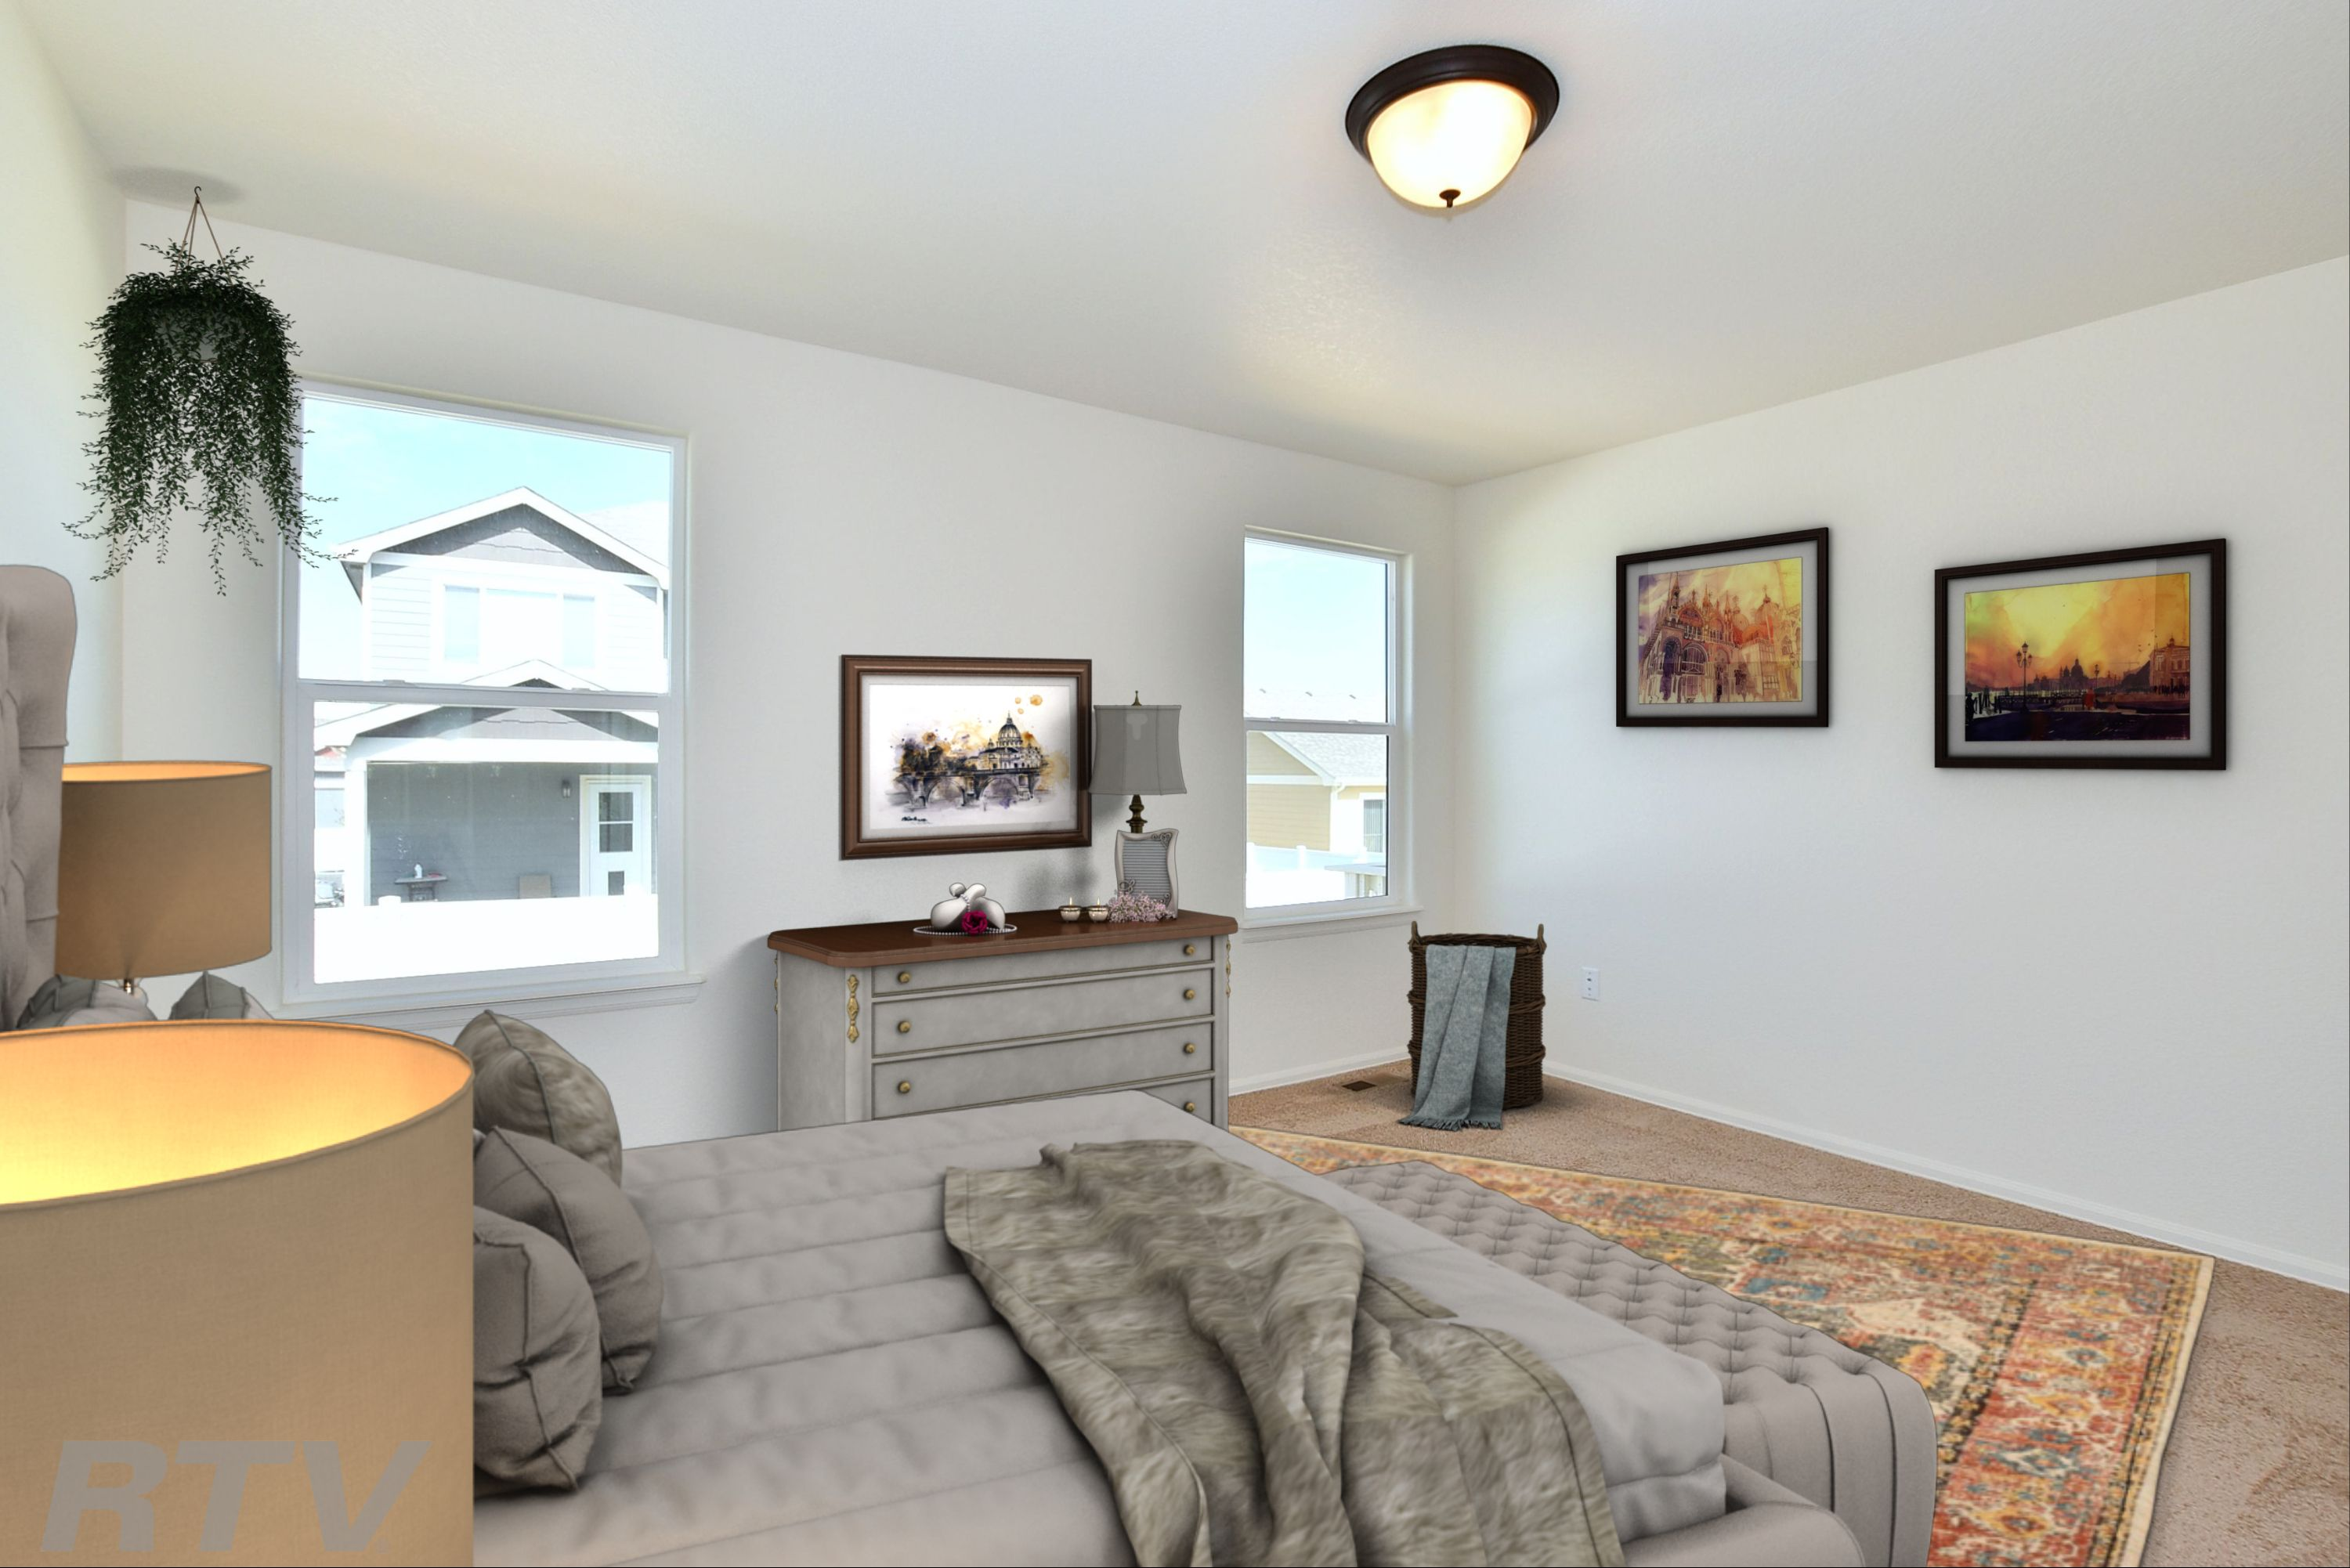 Bedroom featured in the Arizona By Journey Homes in Greeley, CO